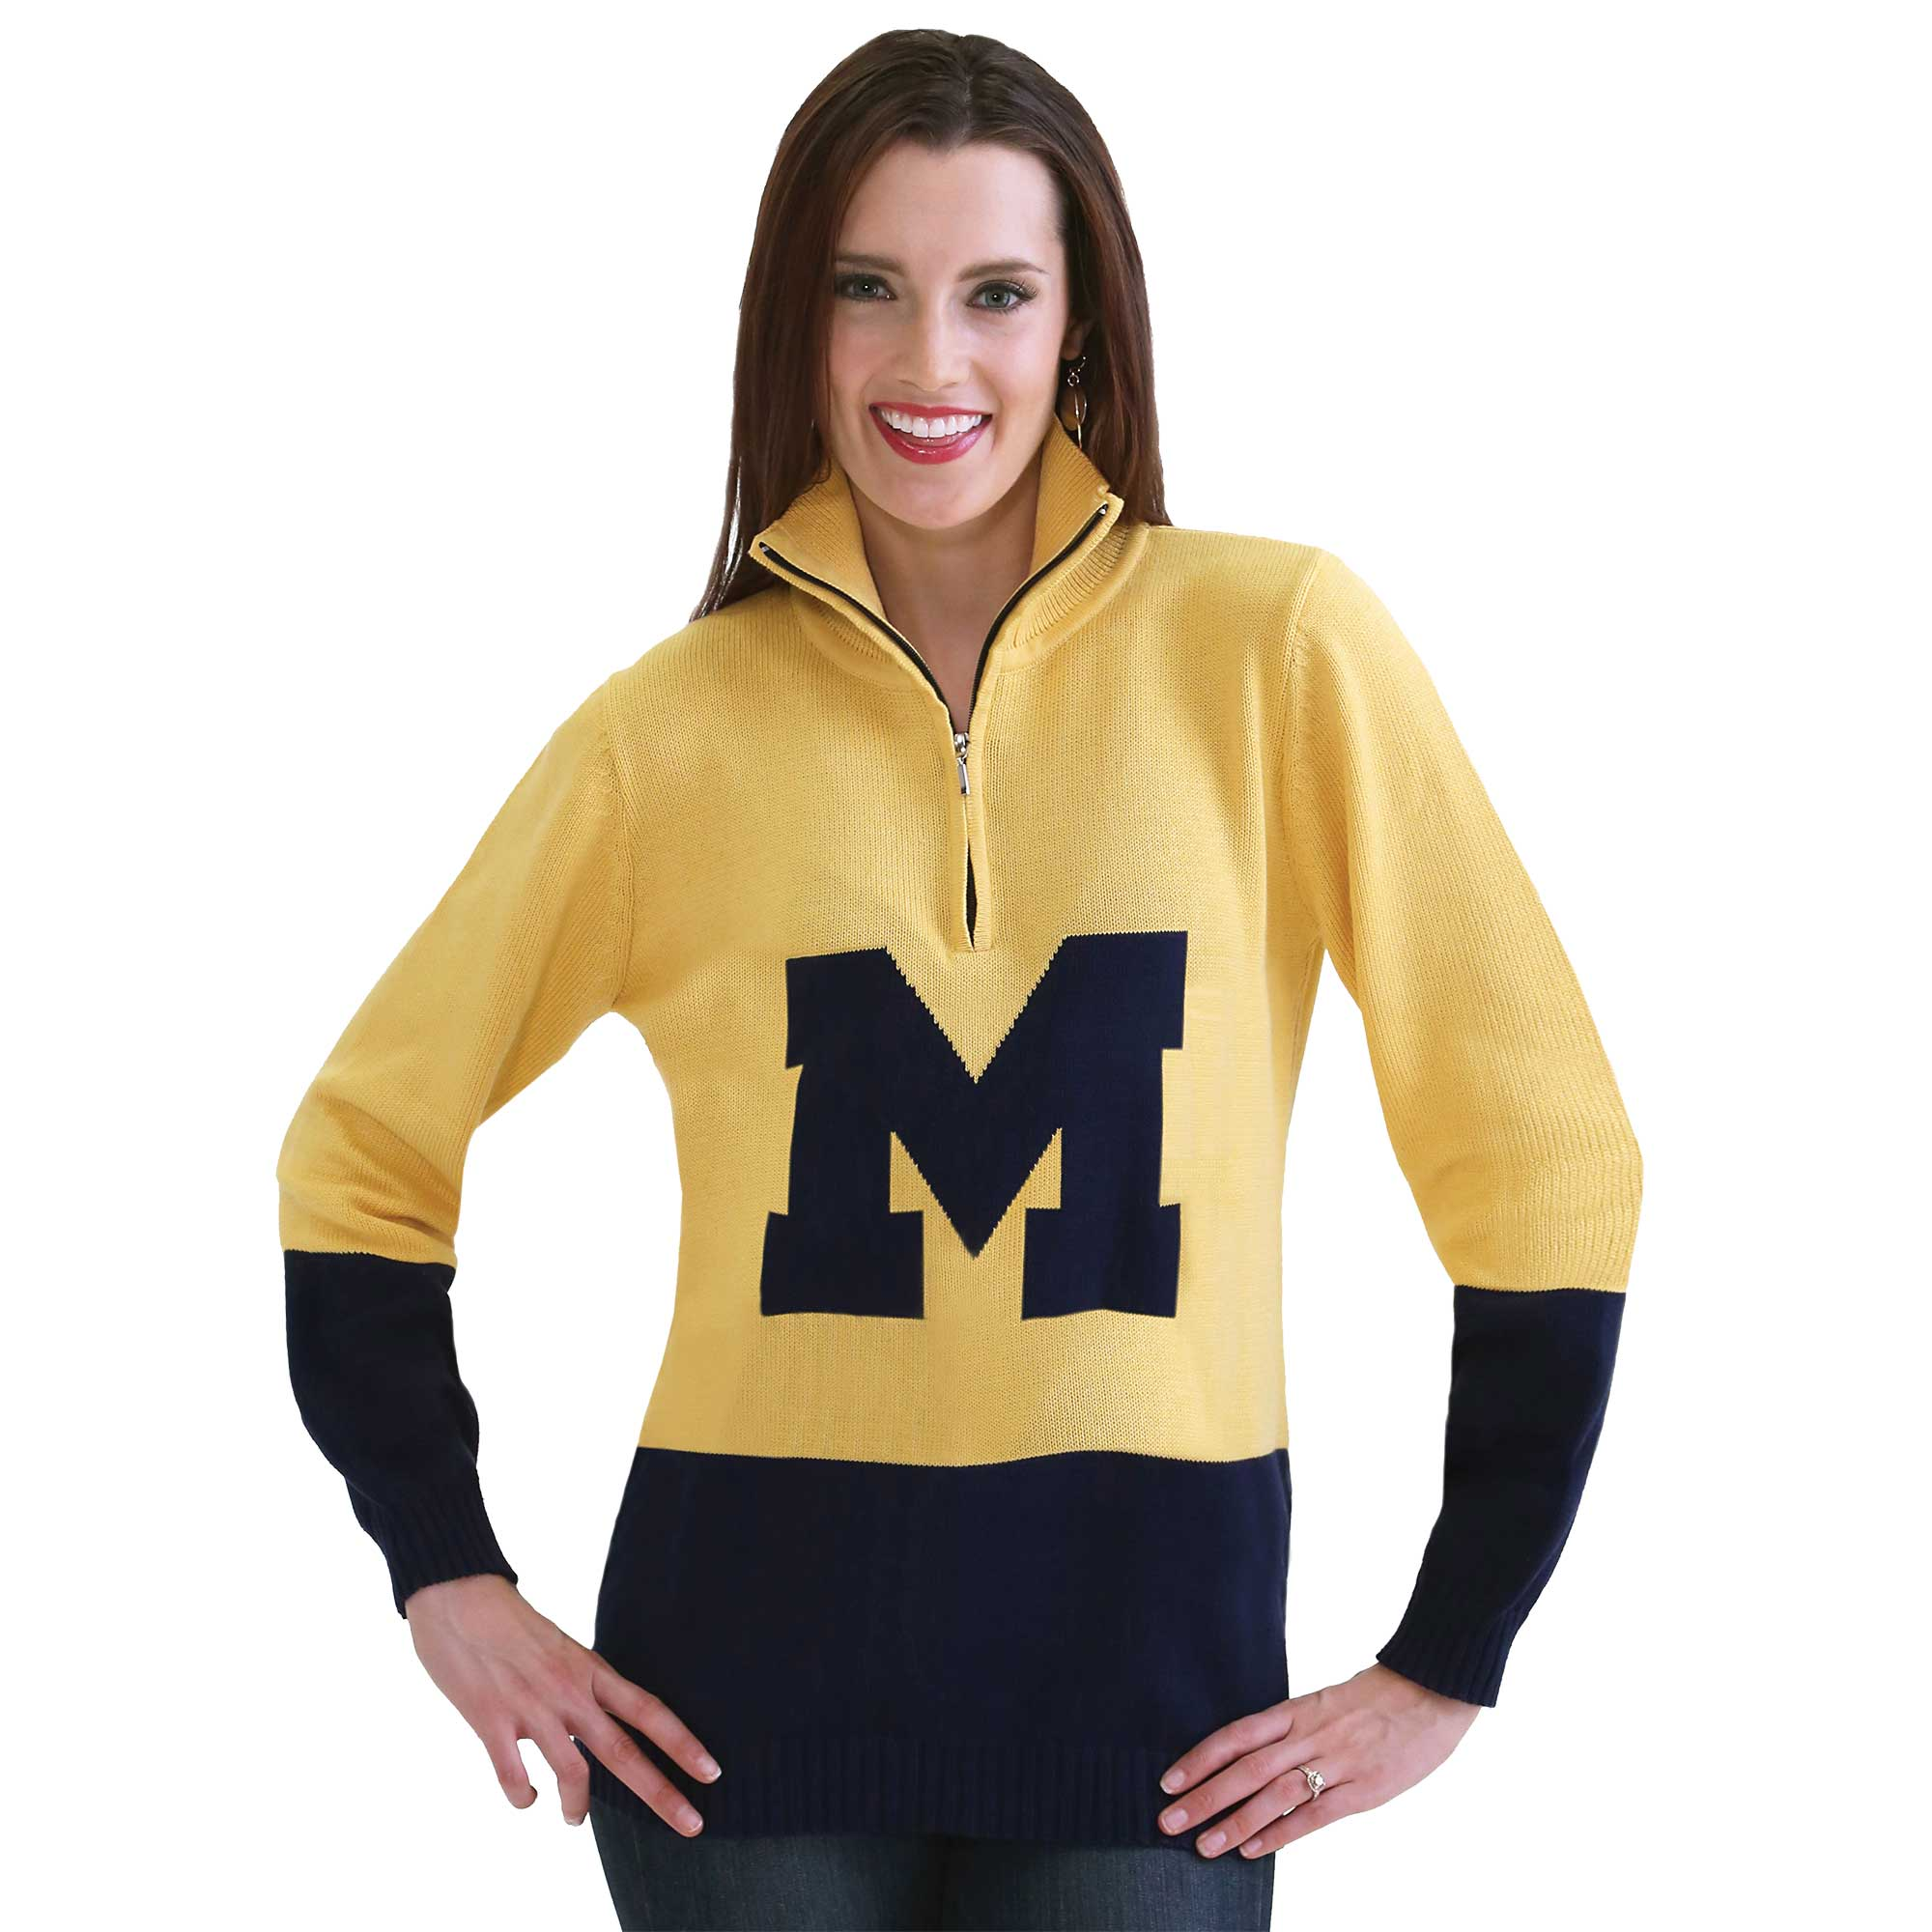 MICHIGAN WOLVERINES LOGO SWEATER - size small only